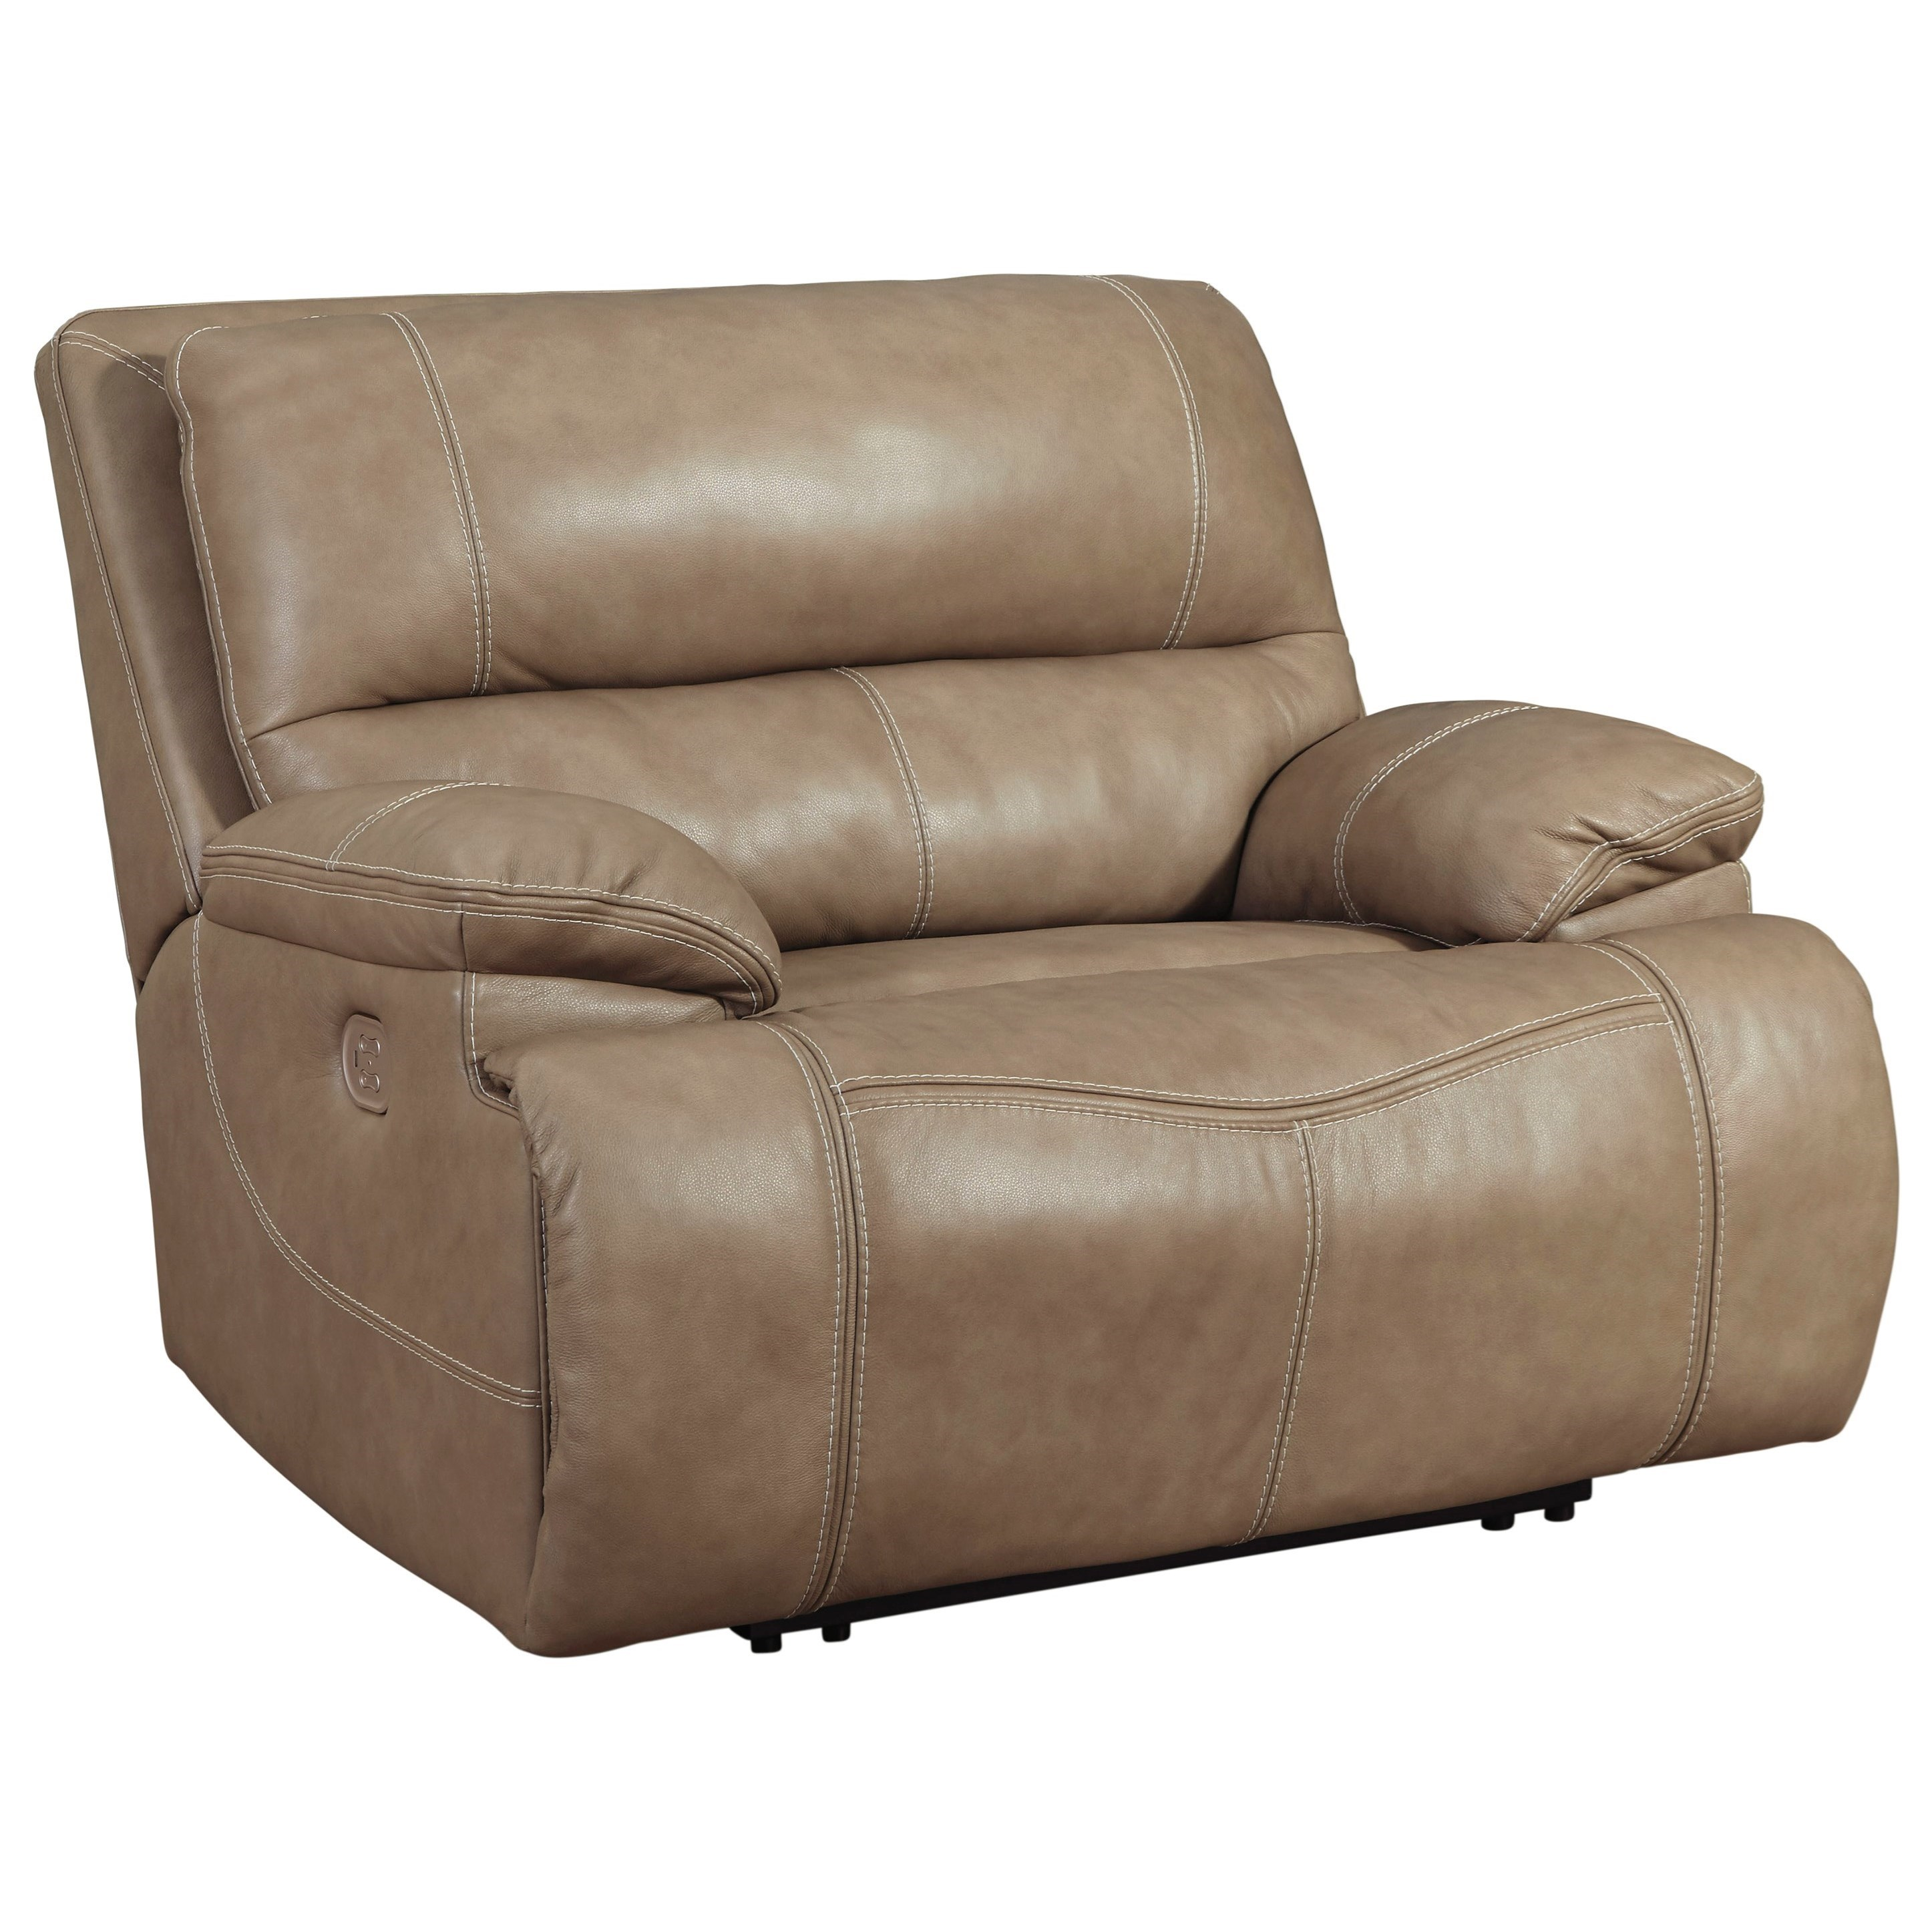 Ricmen Wide Seat Power Recliner by Ashley (Signature Design) at Johnny Janosik